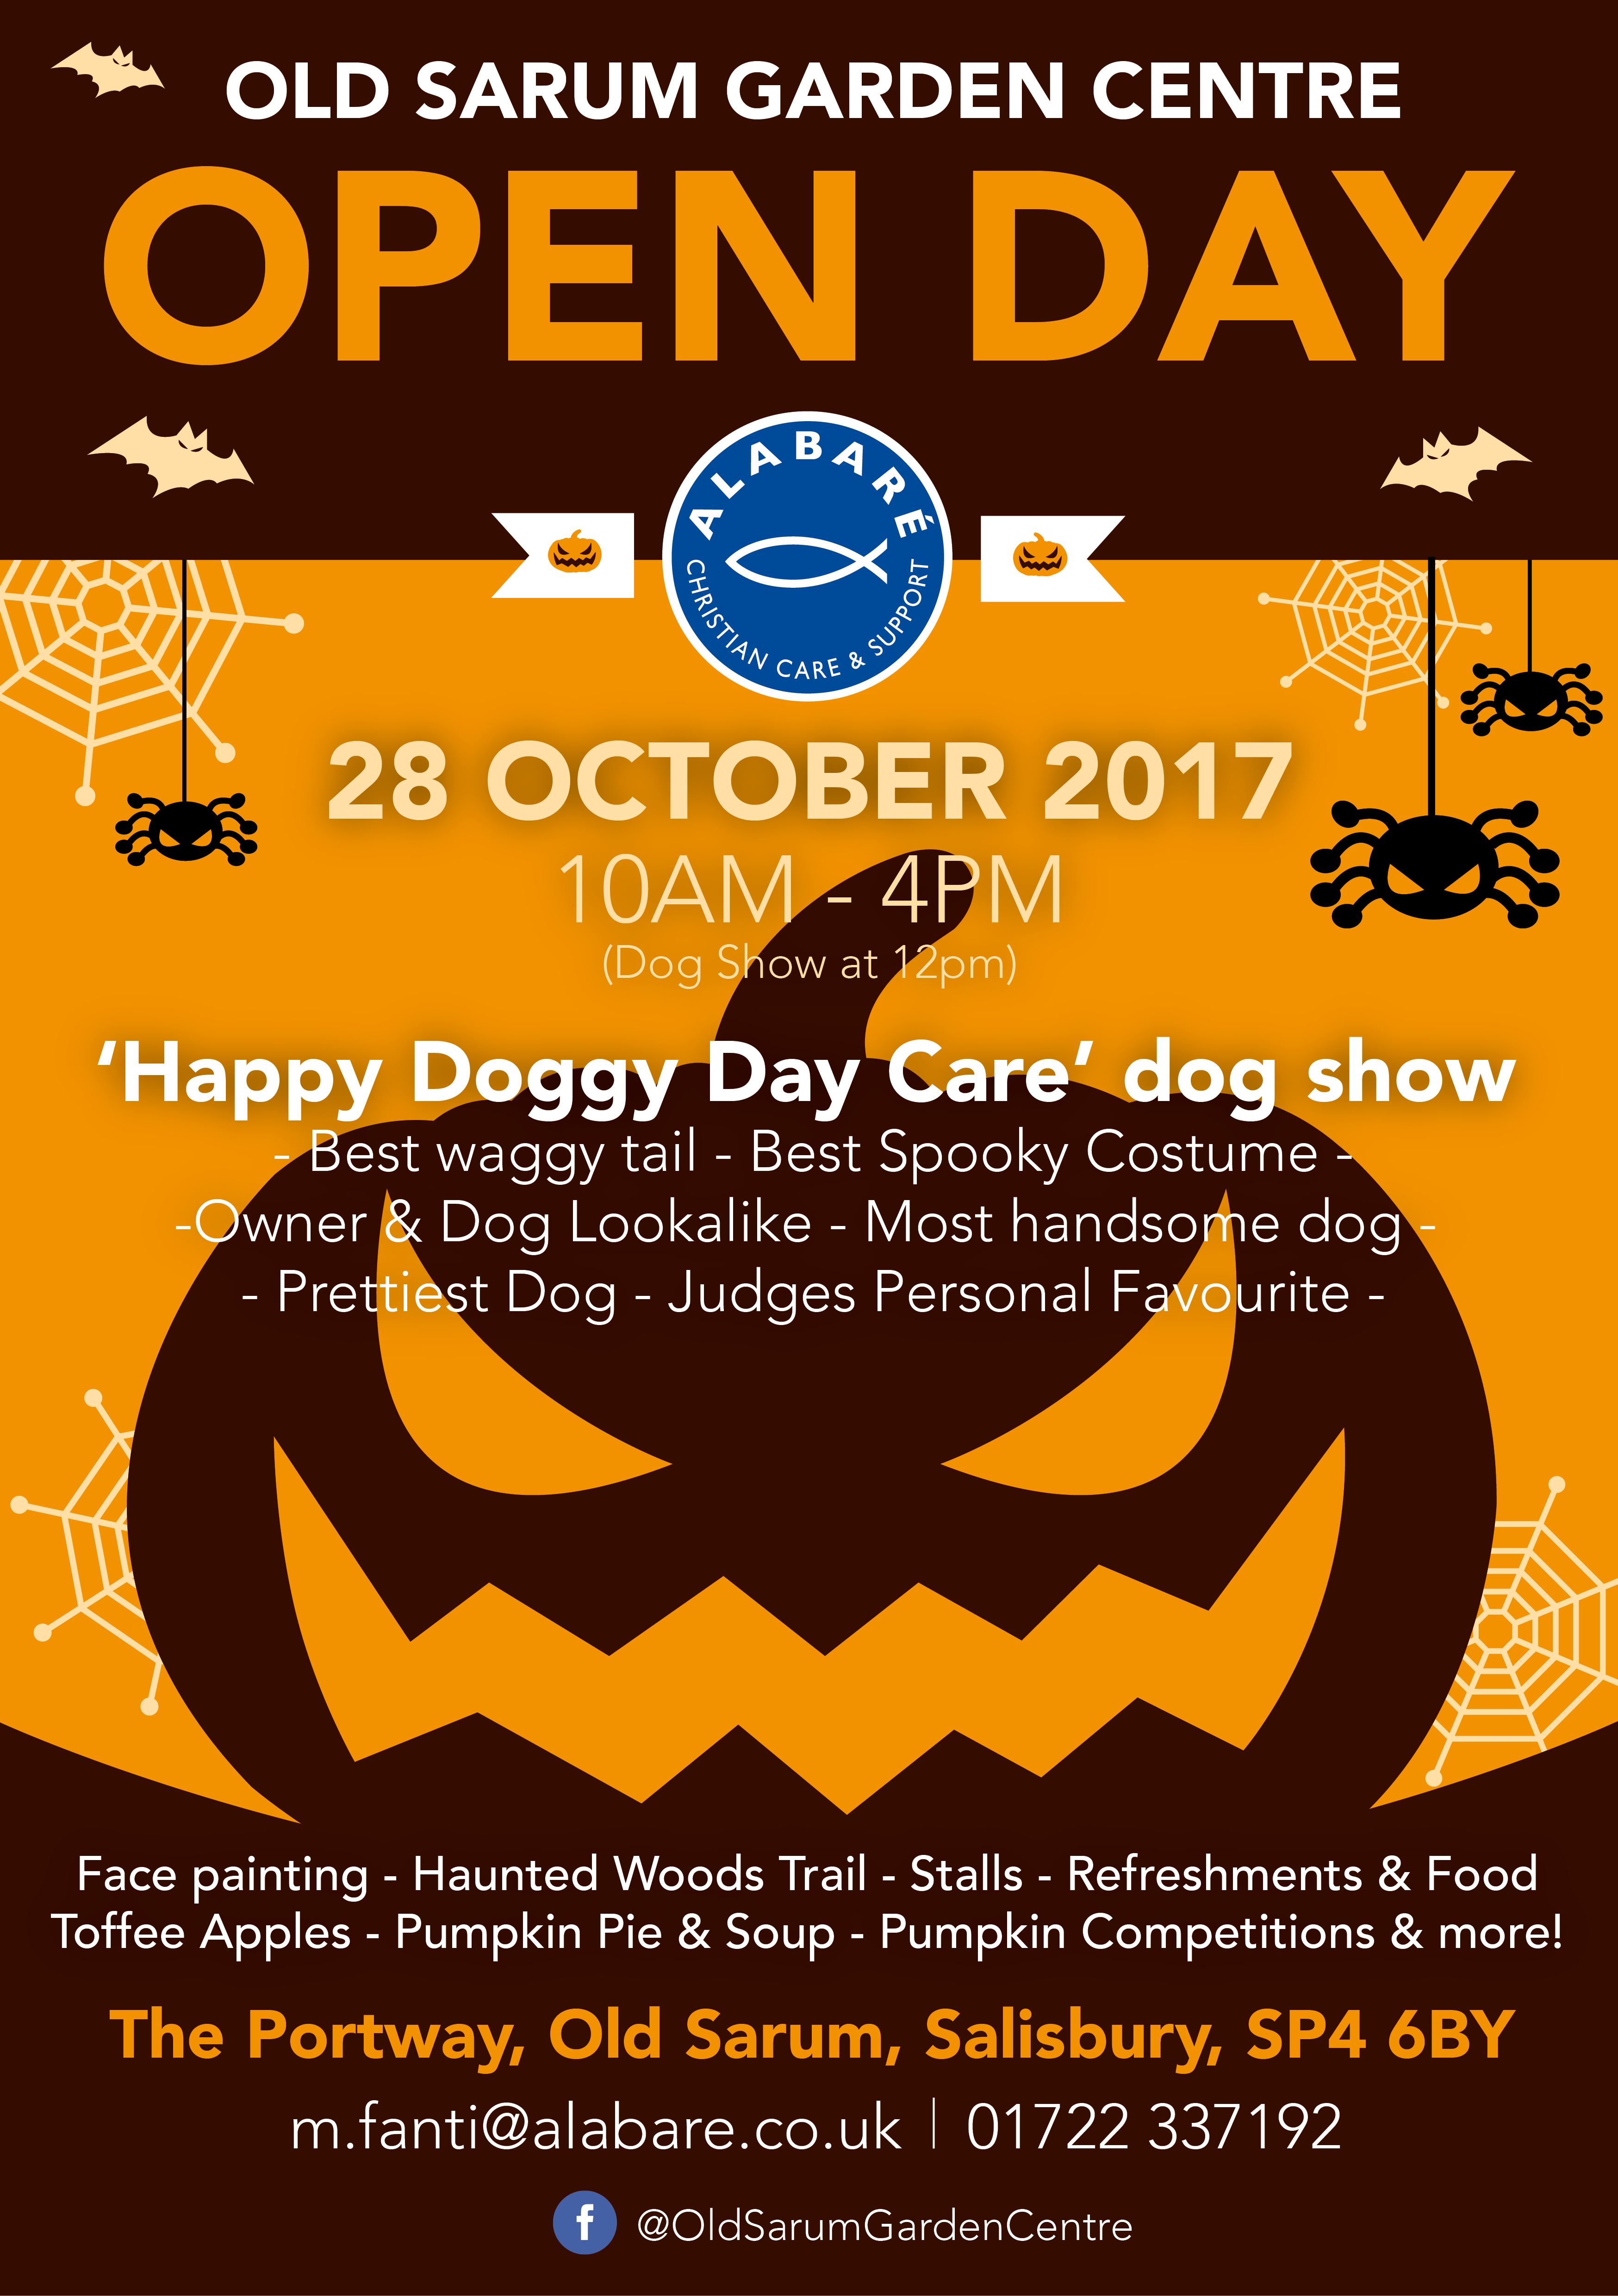 Old Sarum Garden Centre Alabare Open Day October Halloween